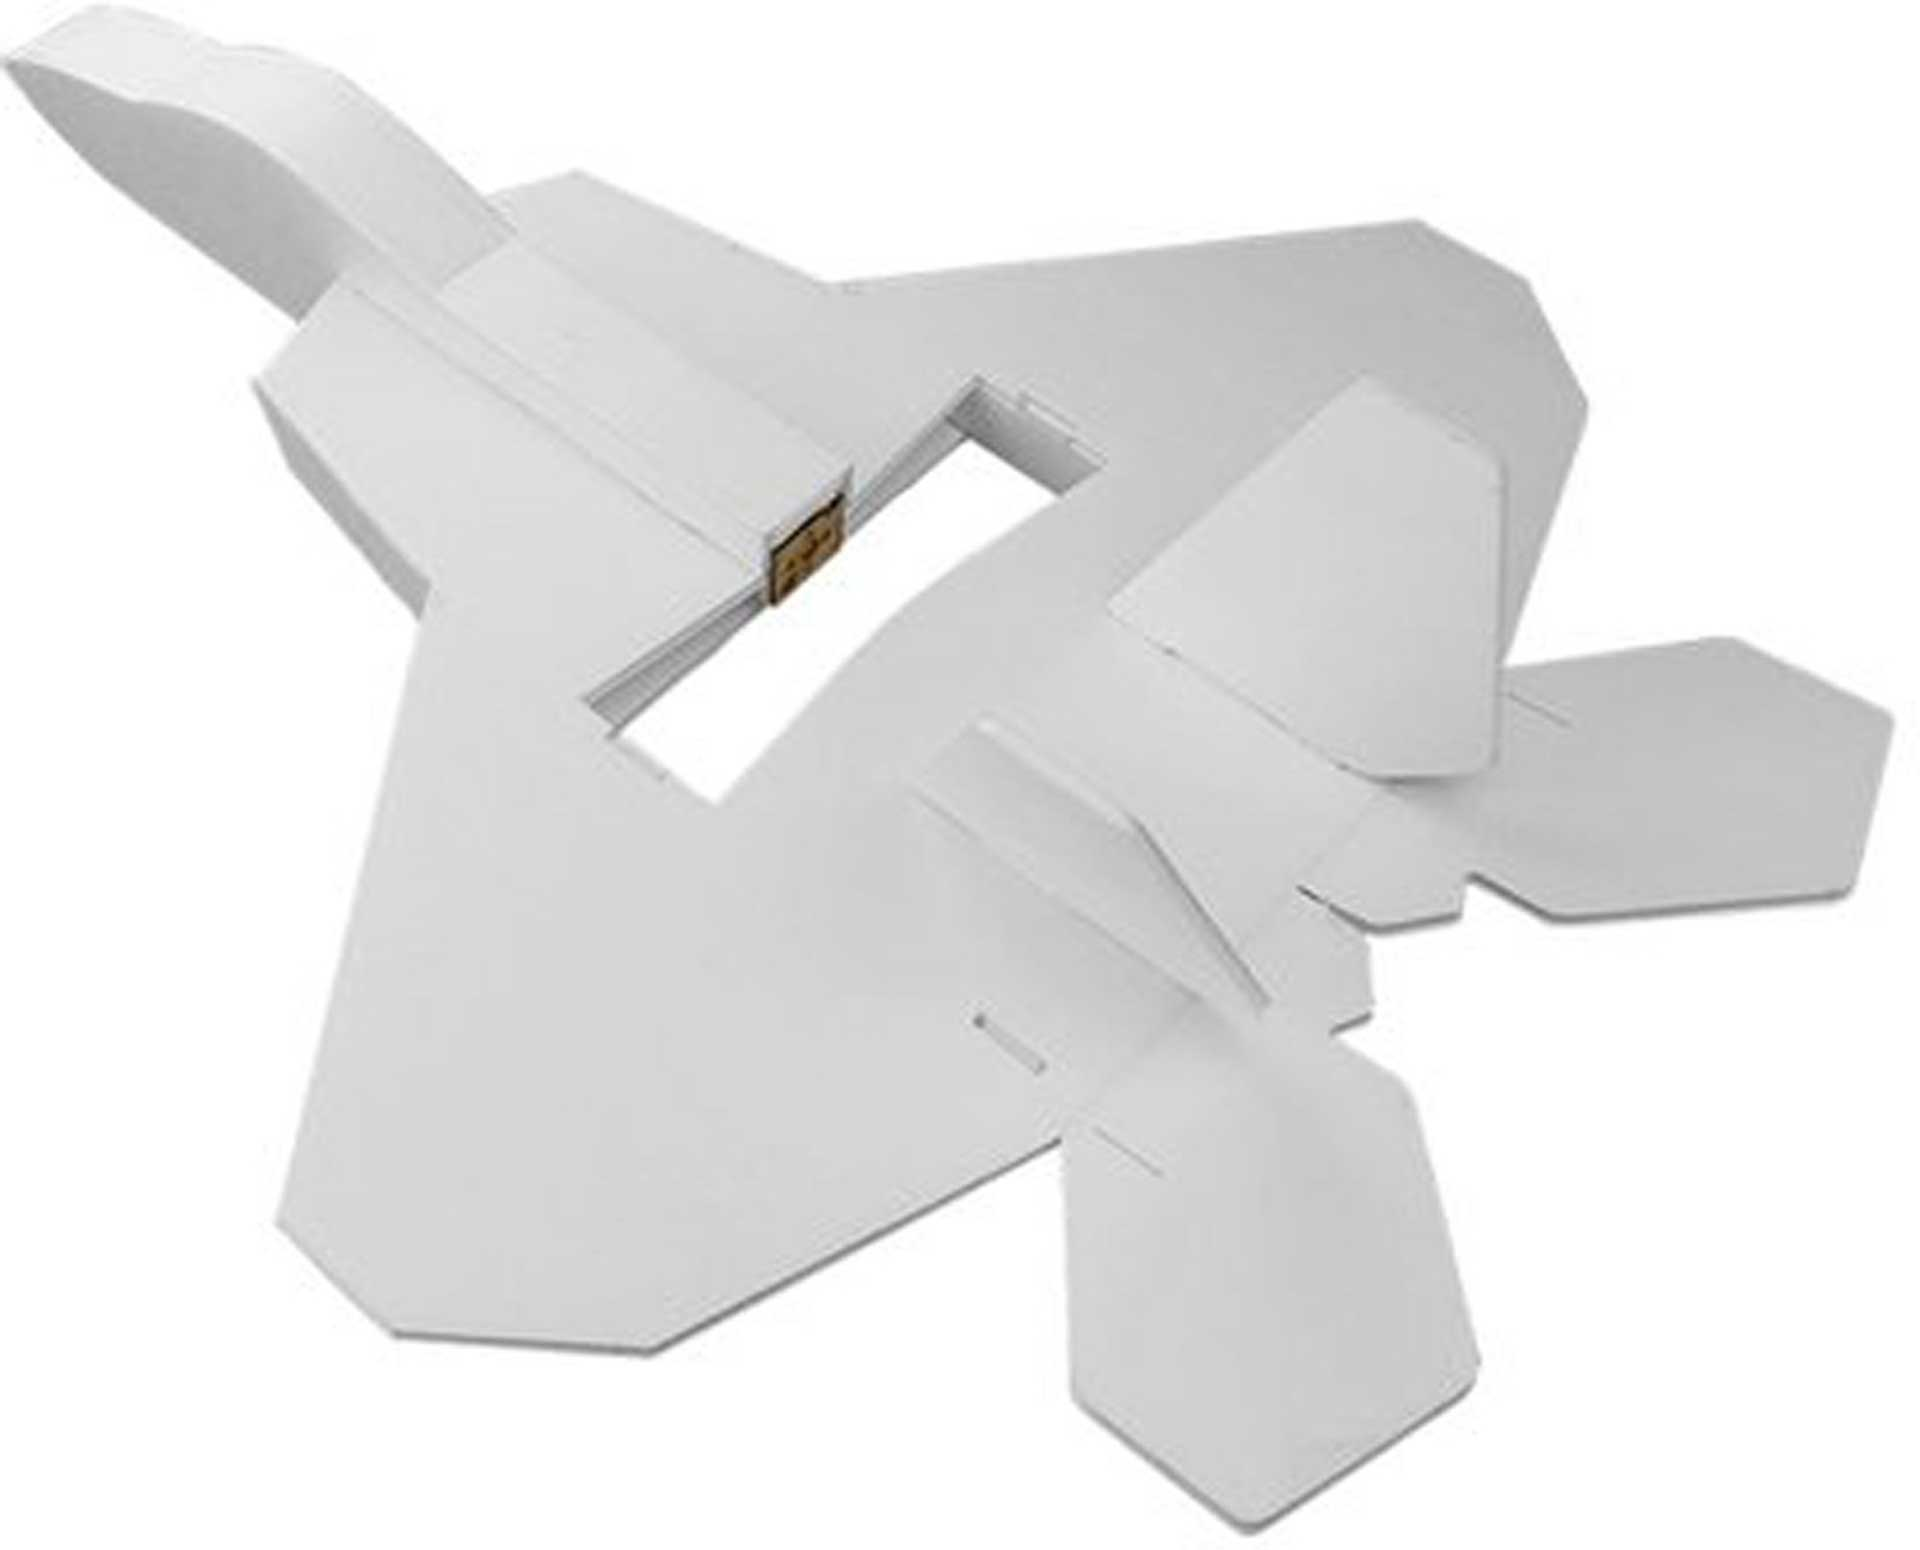 FLITE TEST Mini F-22 Raptor Kit Foam